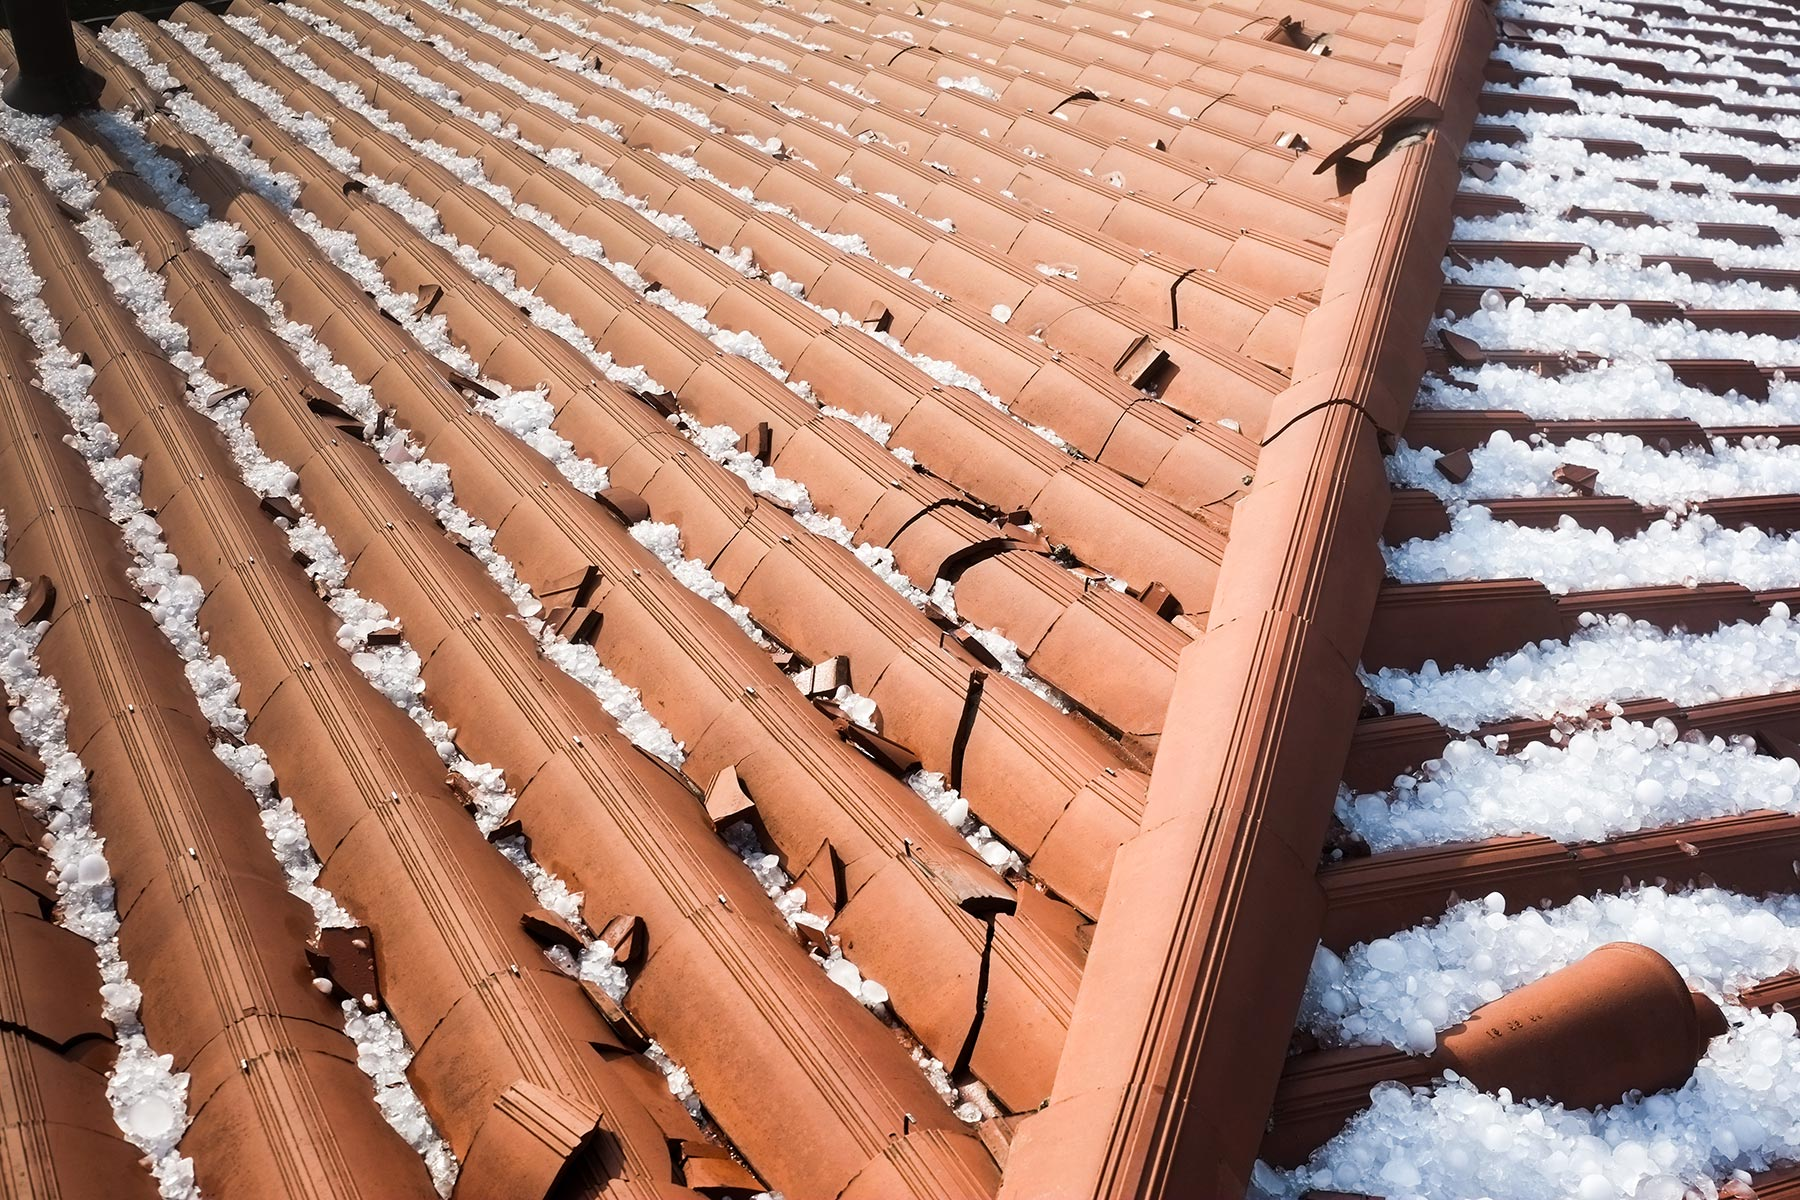 Damaged rooftop covered in hail after a hail storm